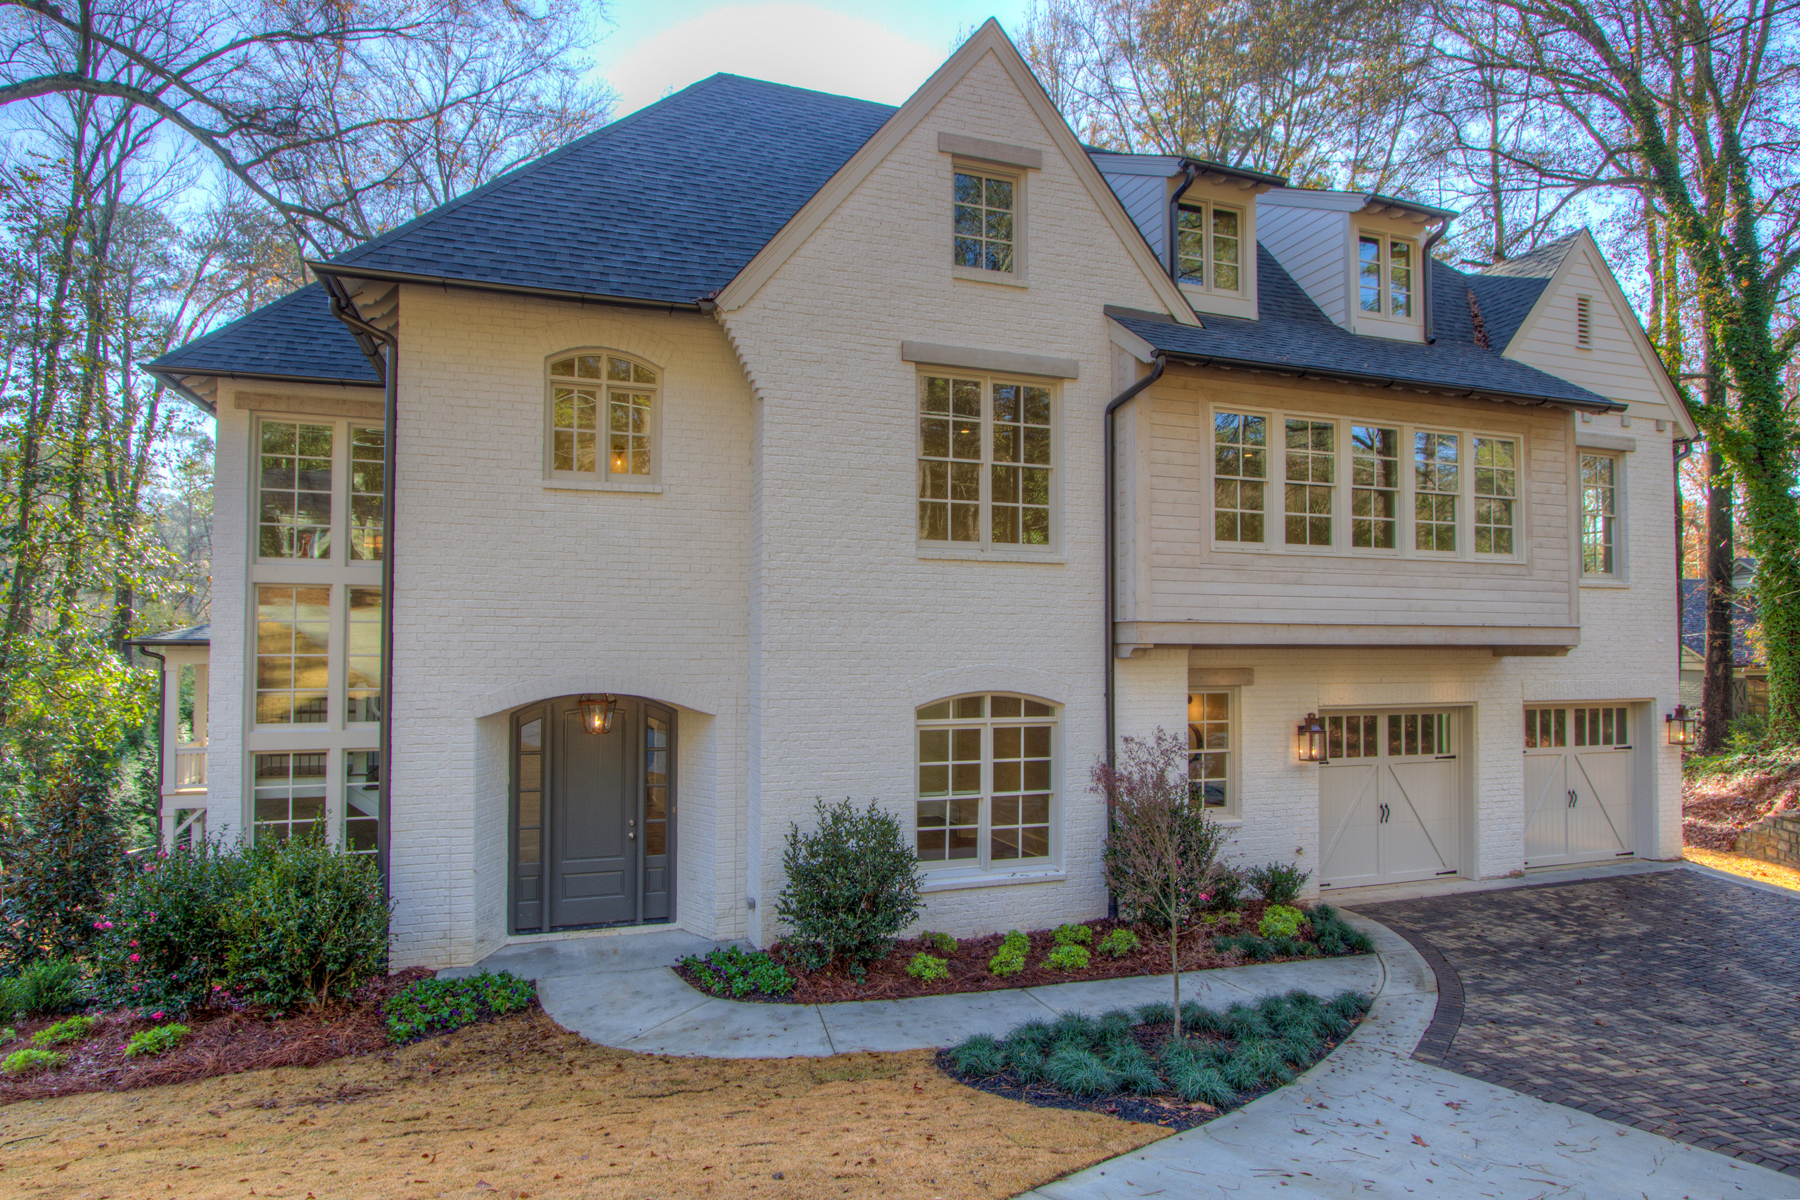 Single Family Home for Active at Beautiful New Construction In Chastain Park 496 Broadland Road NW Atlanta, Georgia 30342 United States